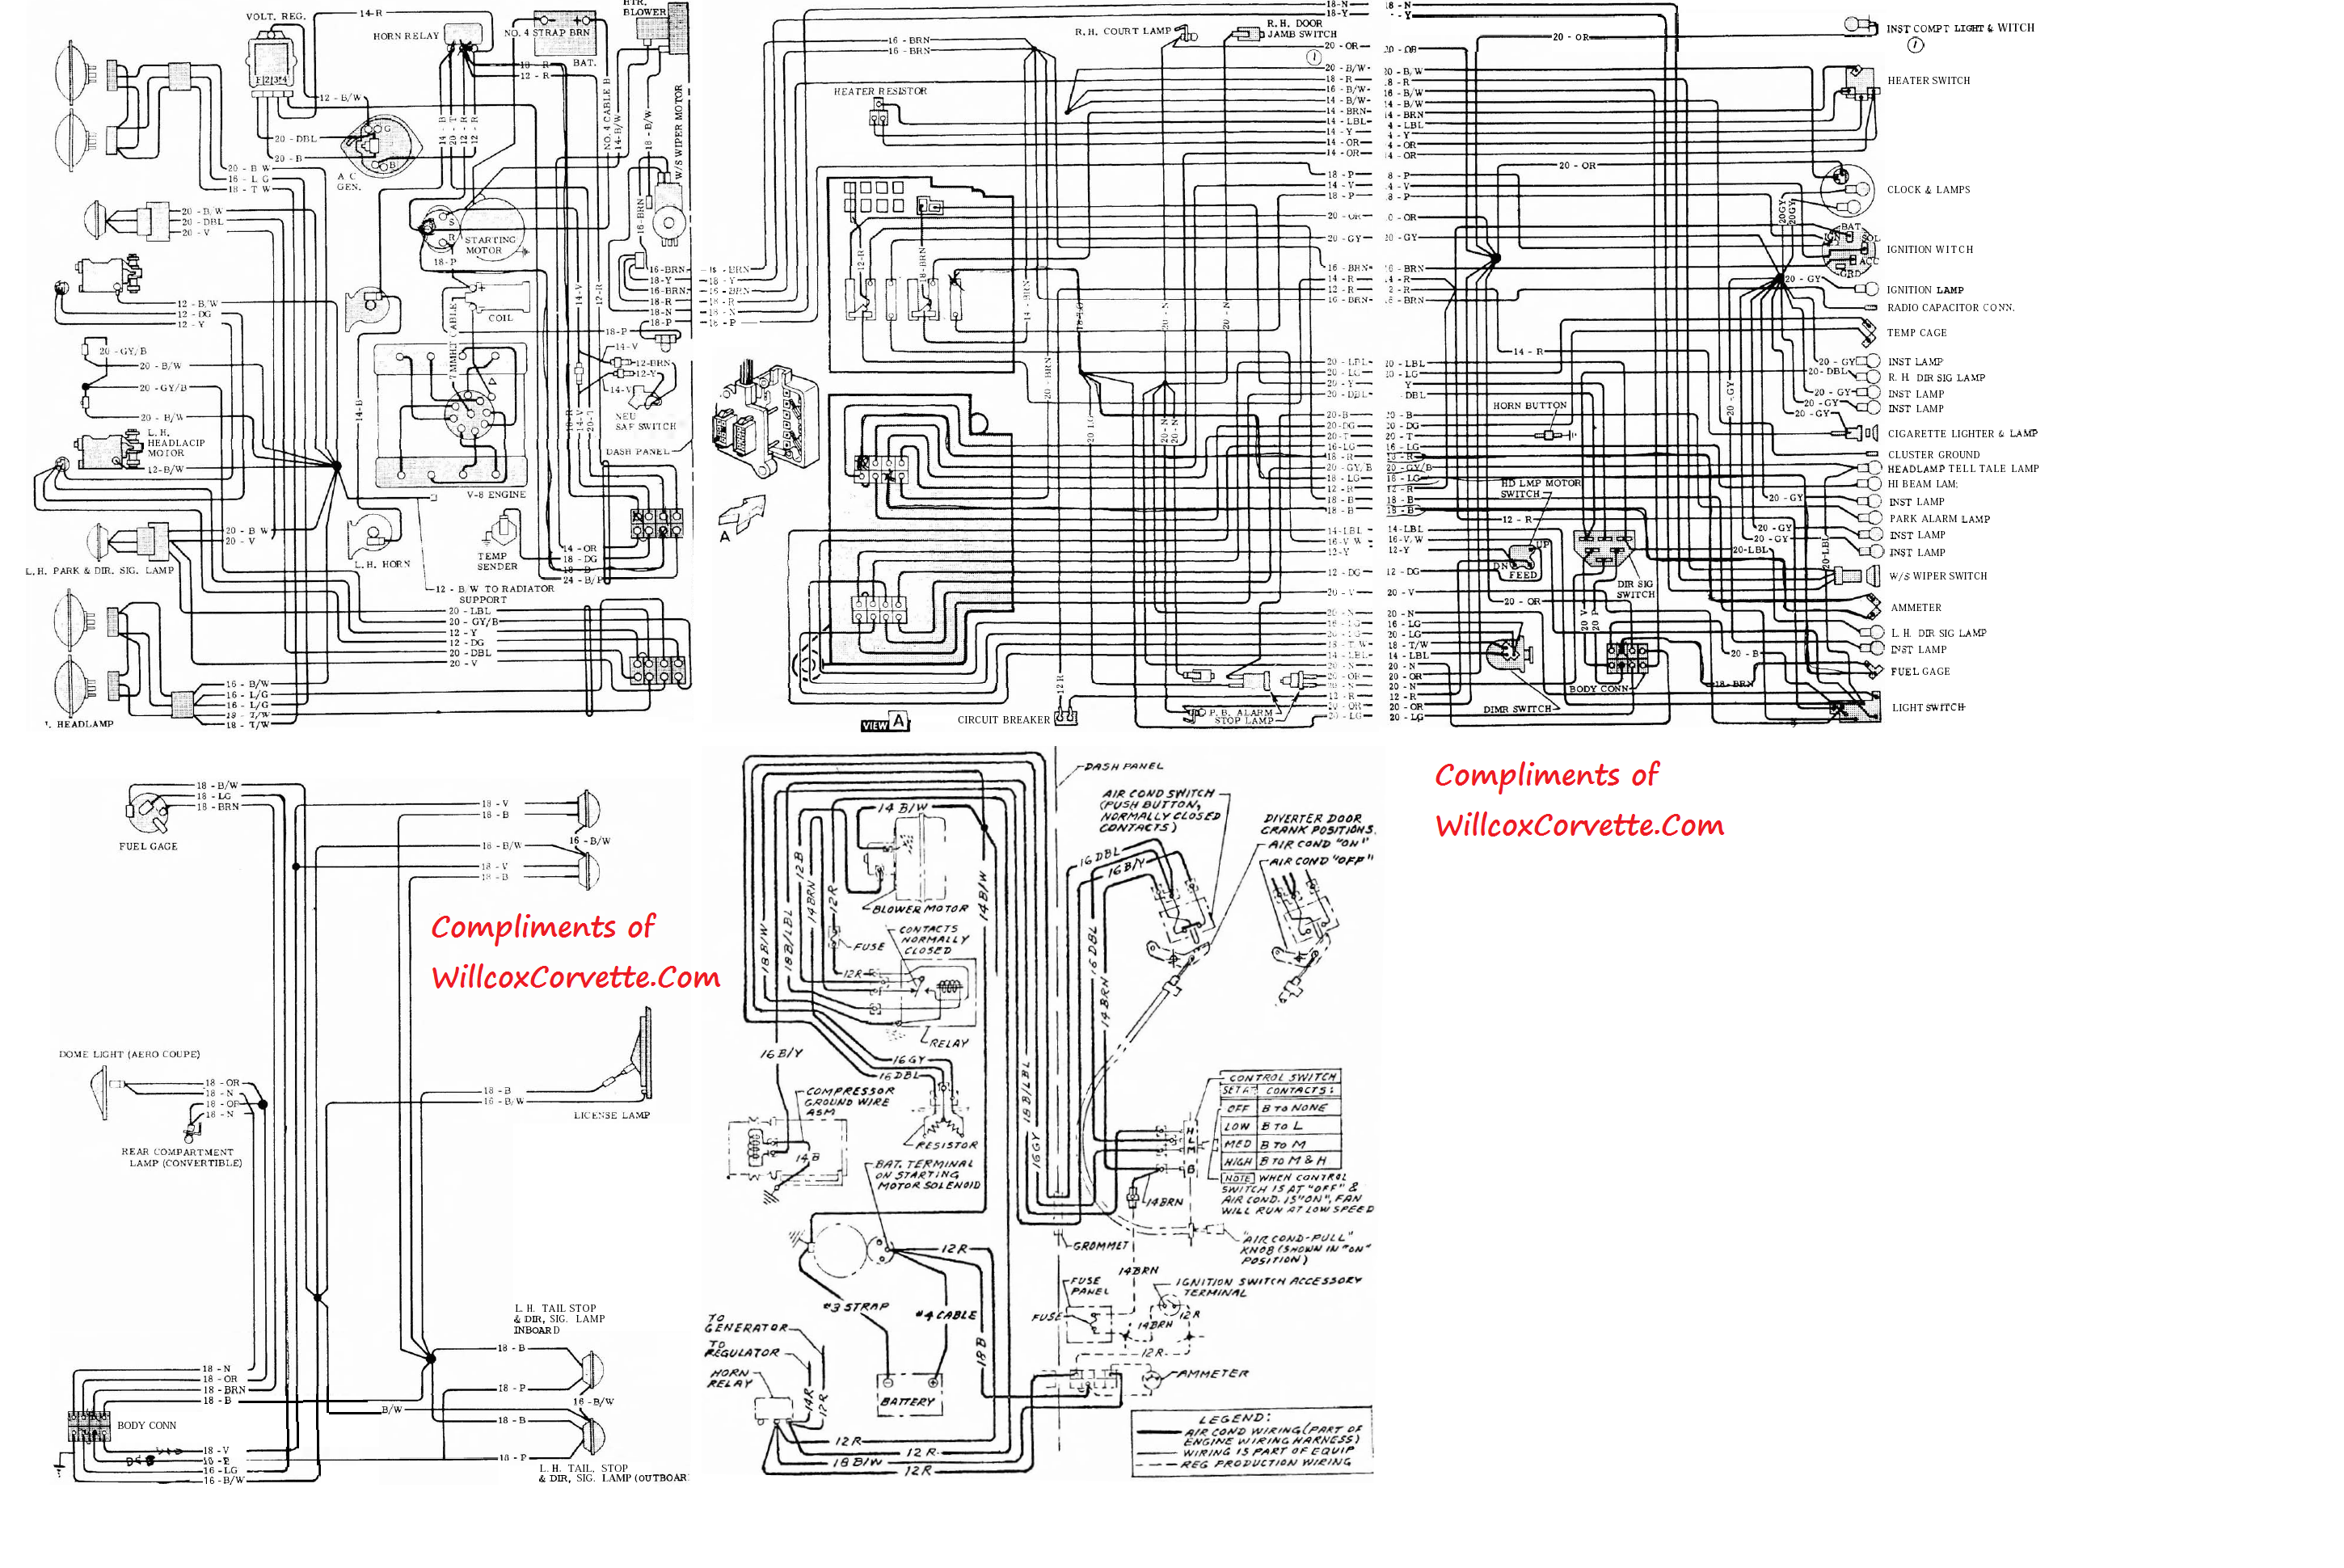 1963 Corvette Tracer Wiring Diagram Tracer Schematic 2001 corvette wiring diagram 2001 buick wiring diagram \u2022 wiring 1978 corvette wiring harness at bakdesigns.co